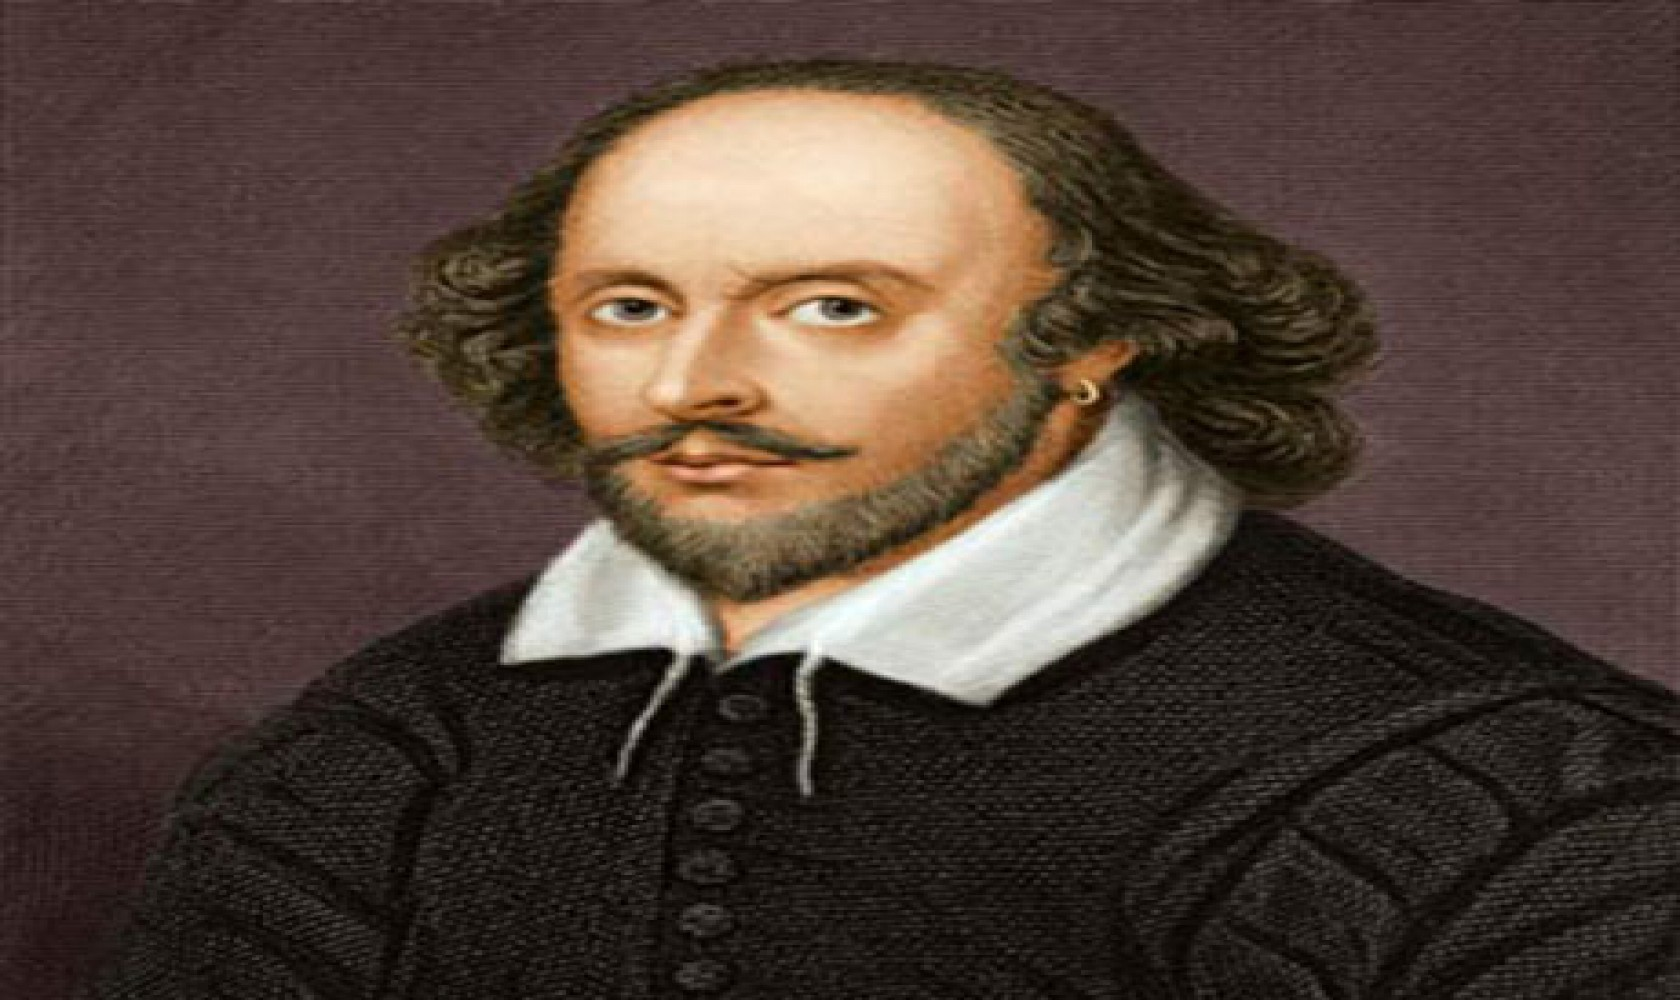 William Shakespeare was an English poet, playwright, and actor, widely regarded as the greatest writer in the English language and the world's pre-eminent dramatist.